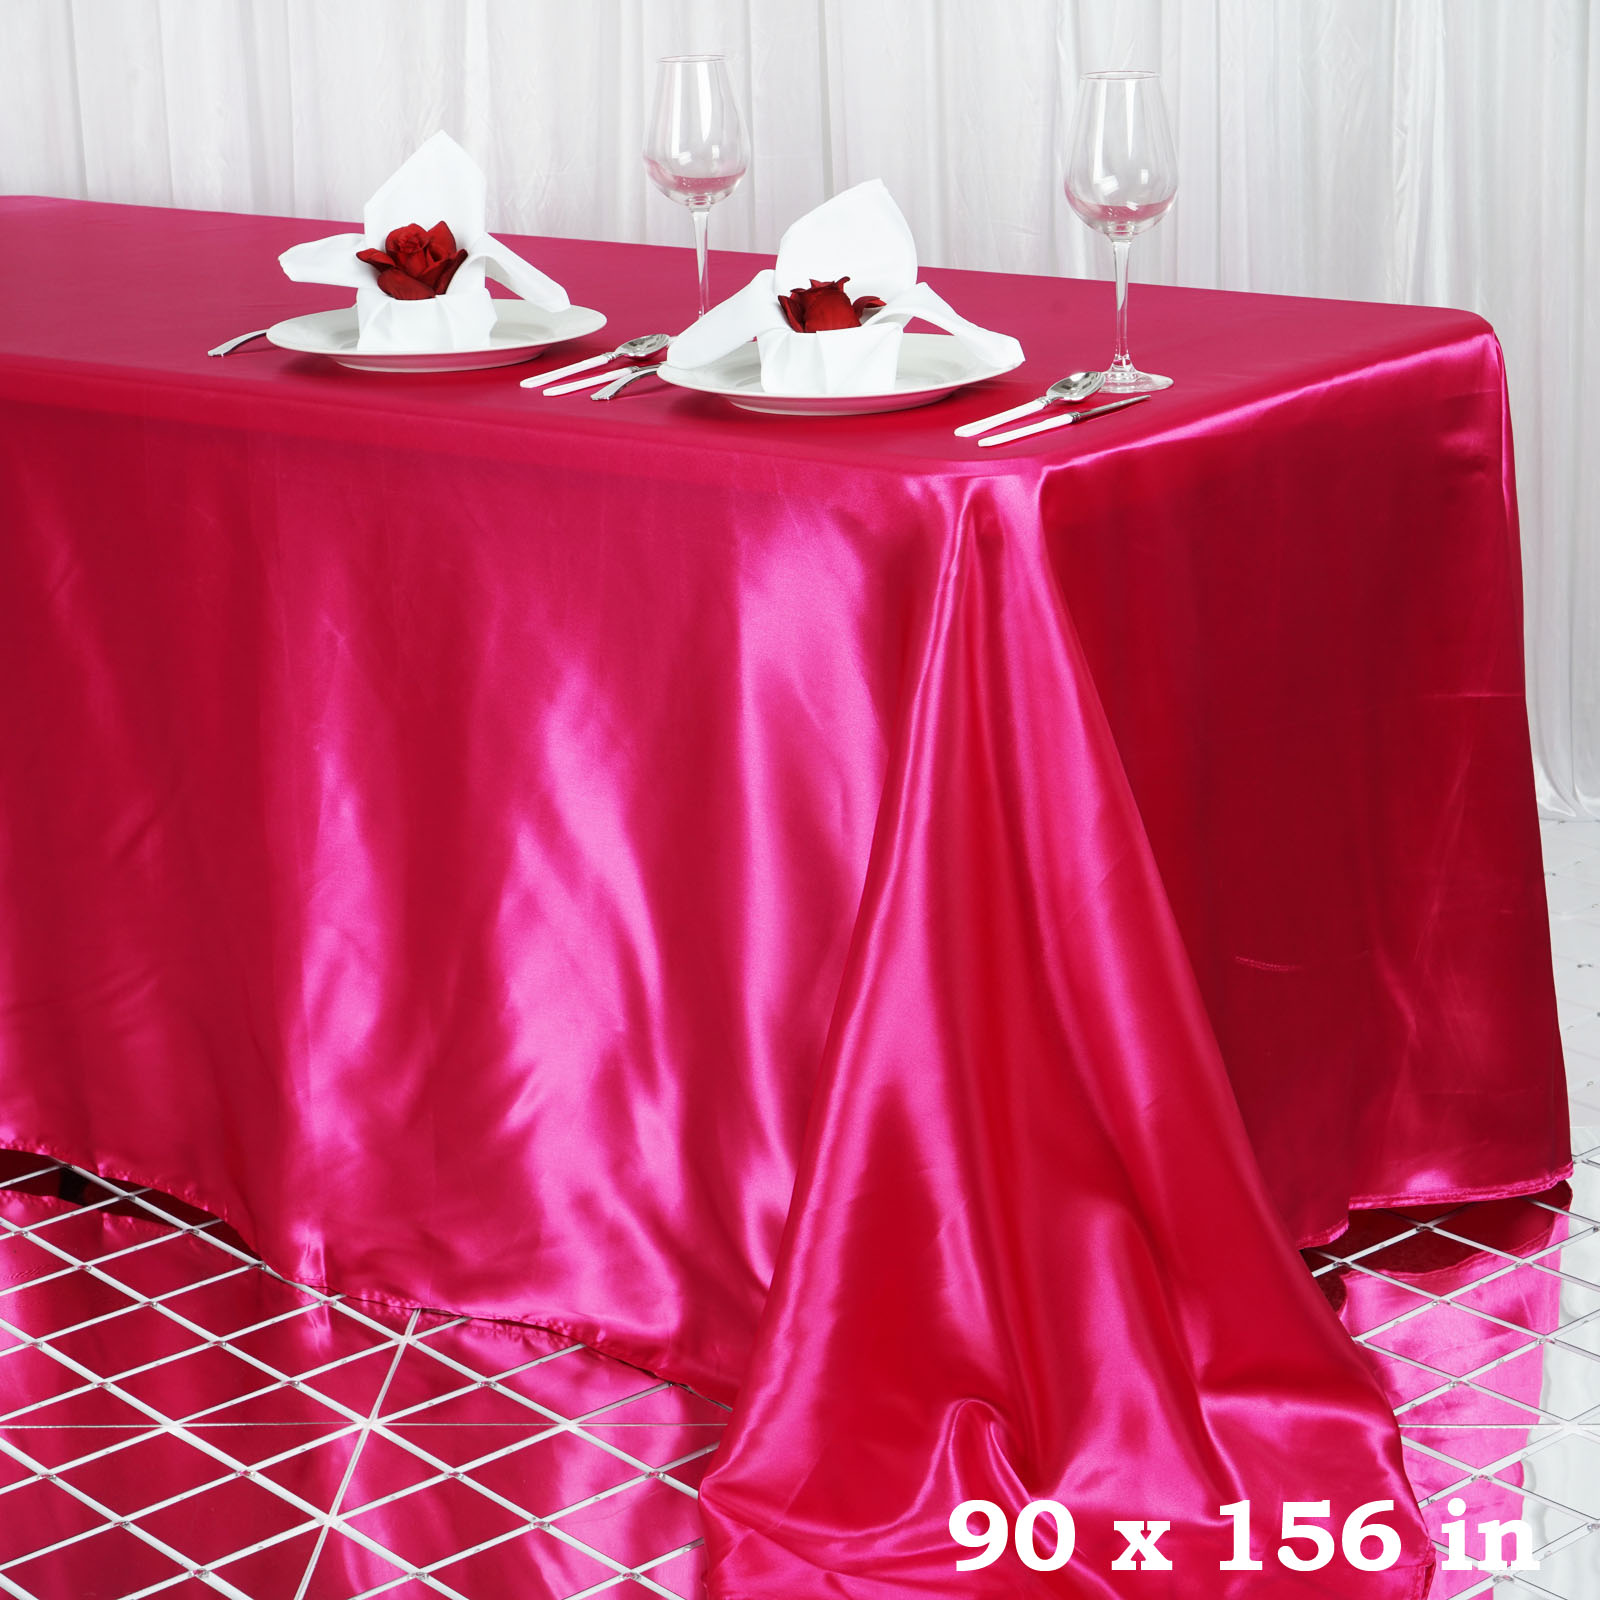 large rectangular tablecloths